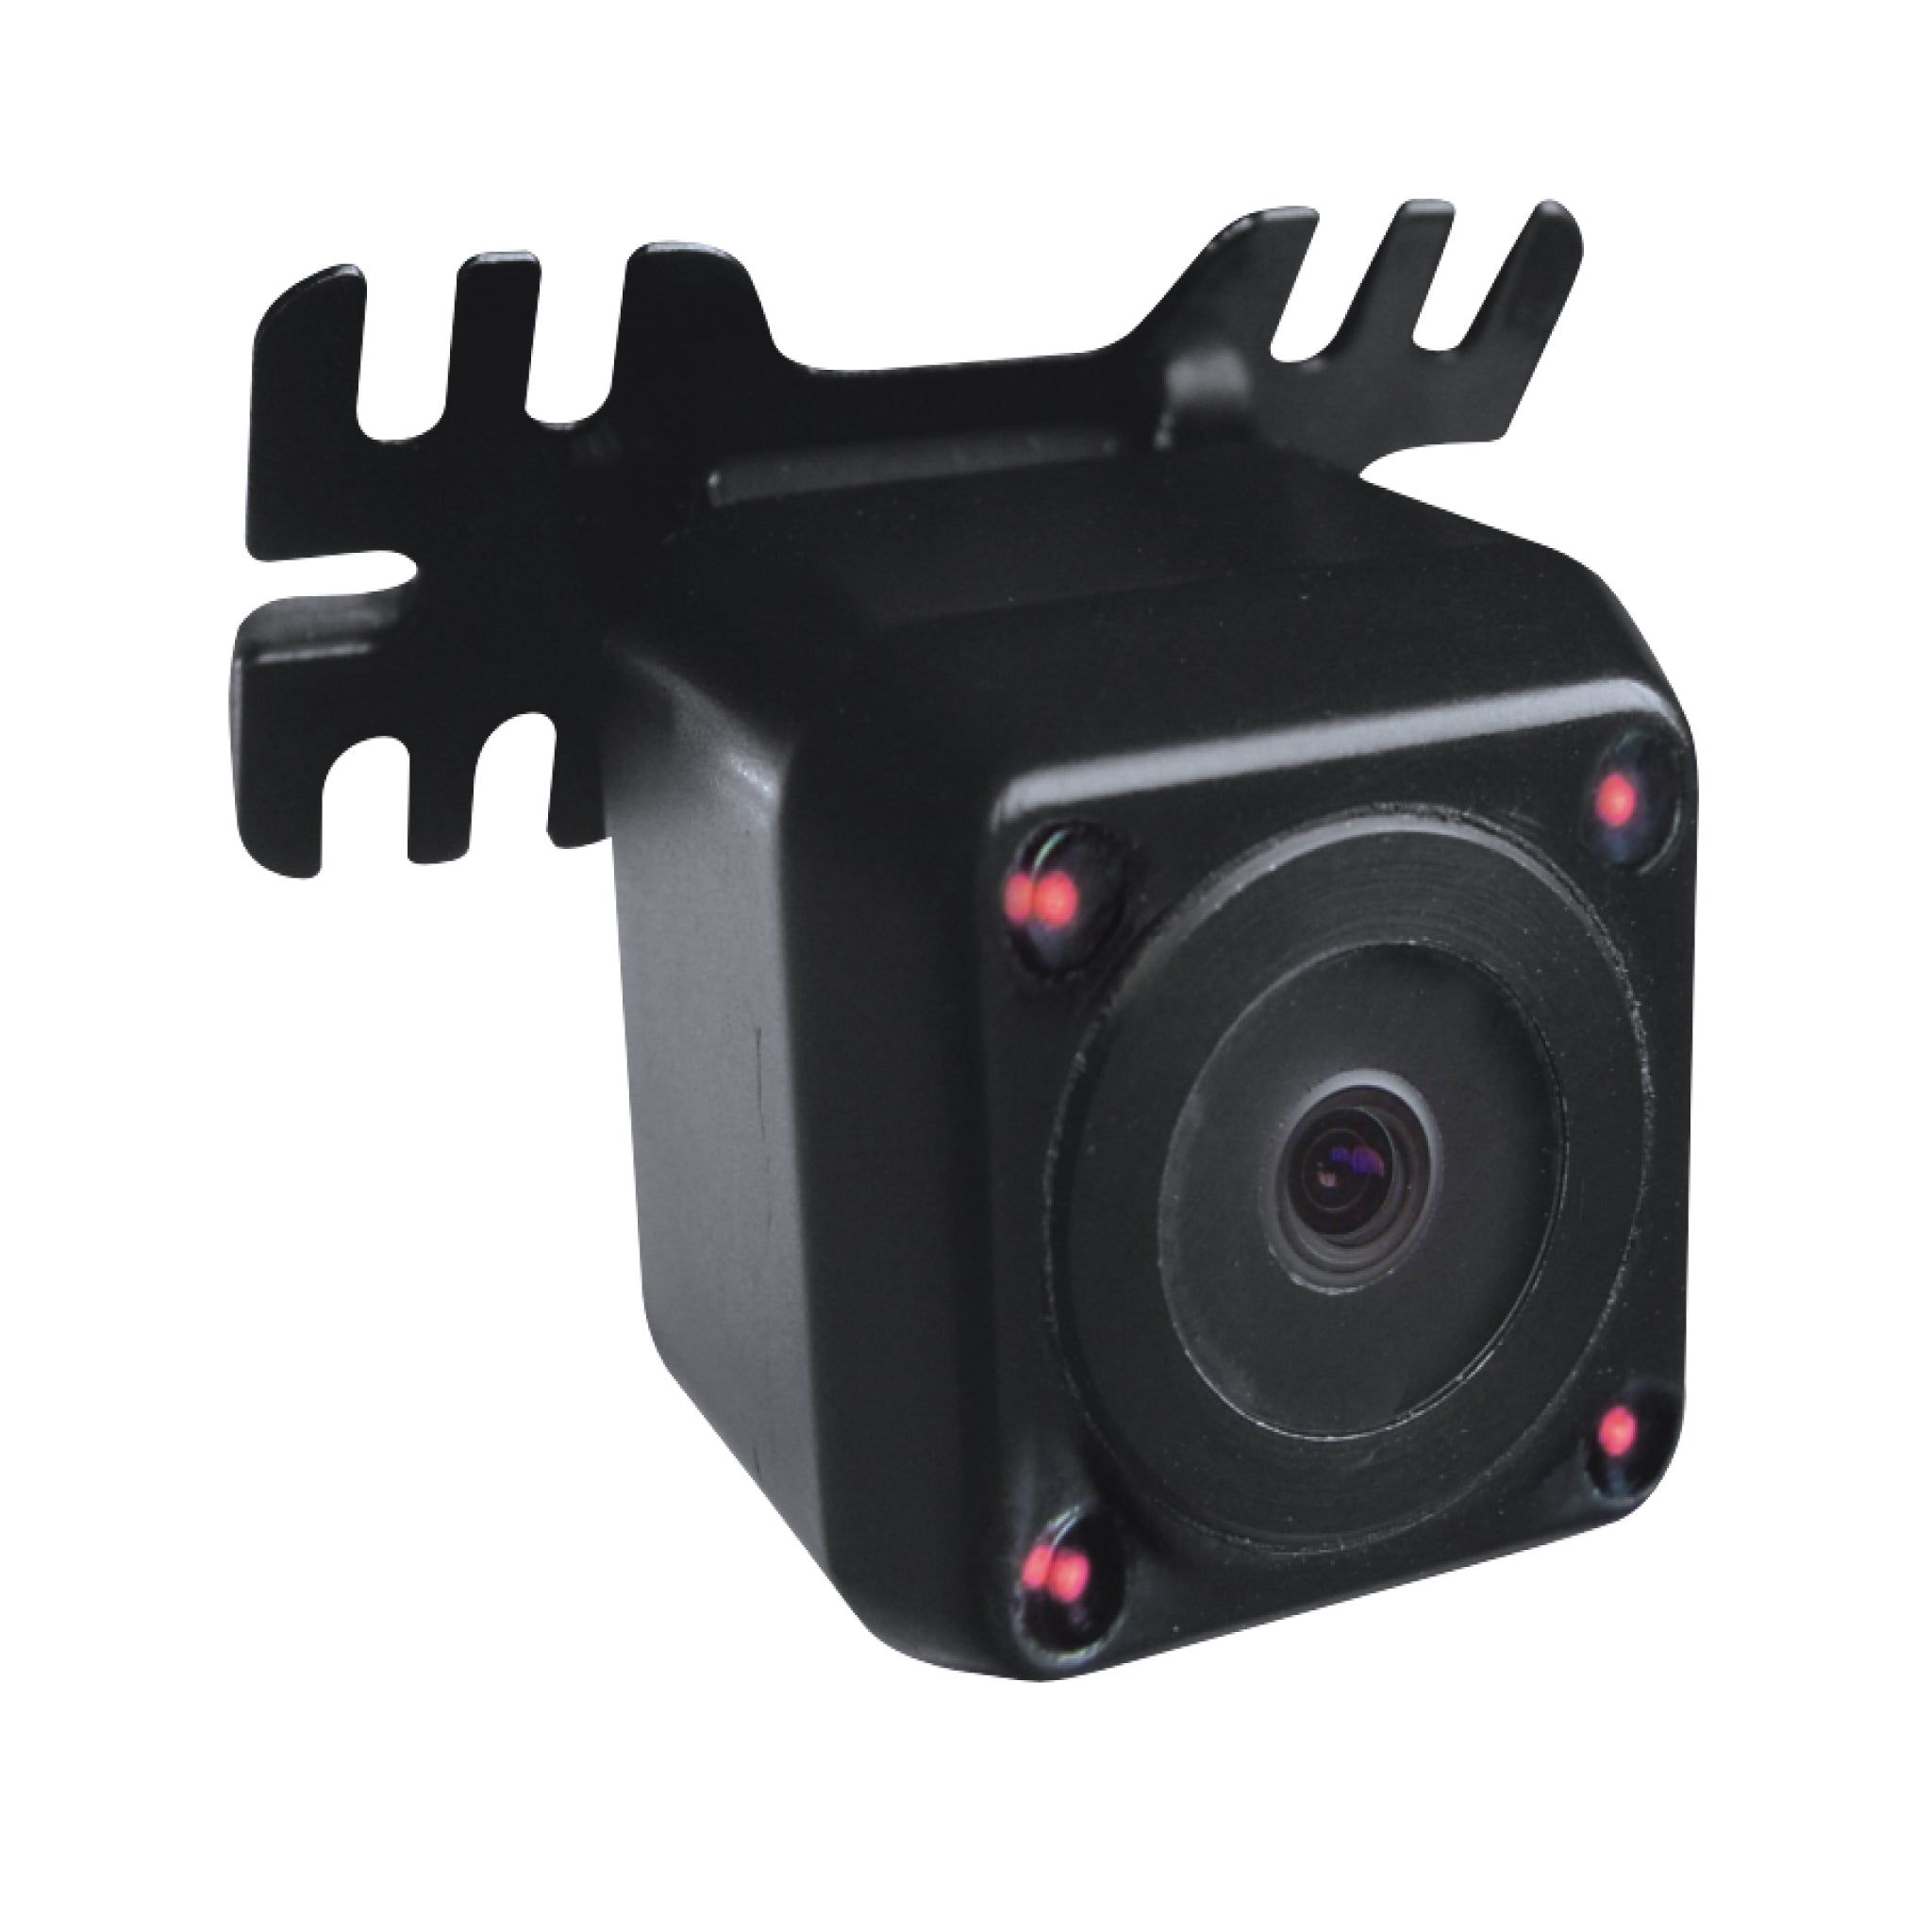 Universal Mini Camera with Night Vision Works in Complete Darkness Super CMOS III